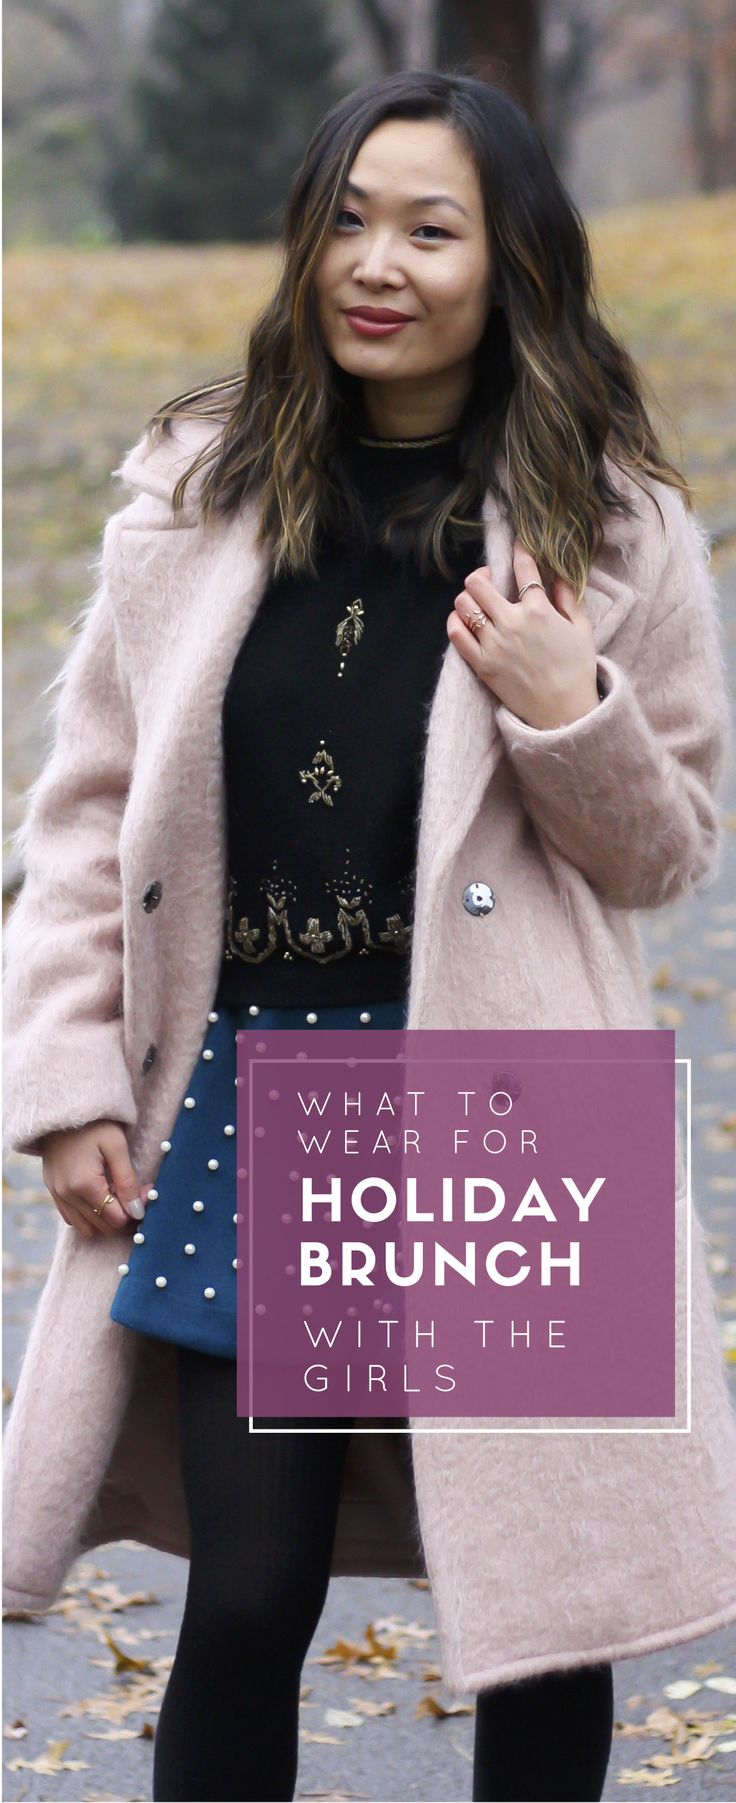 Holiday outfit ideas, what to wear to holiday brunch, pink wool coat, cozy winter outfit ideas. See the post on www.layersofchic.com